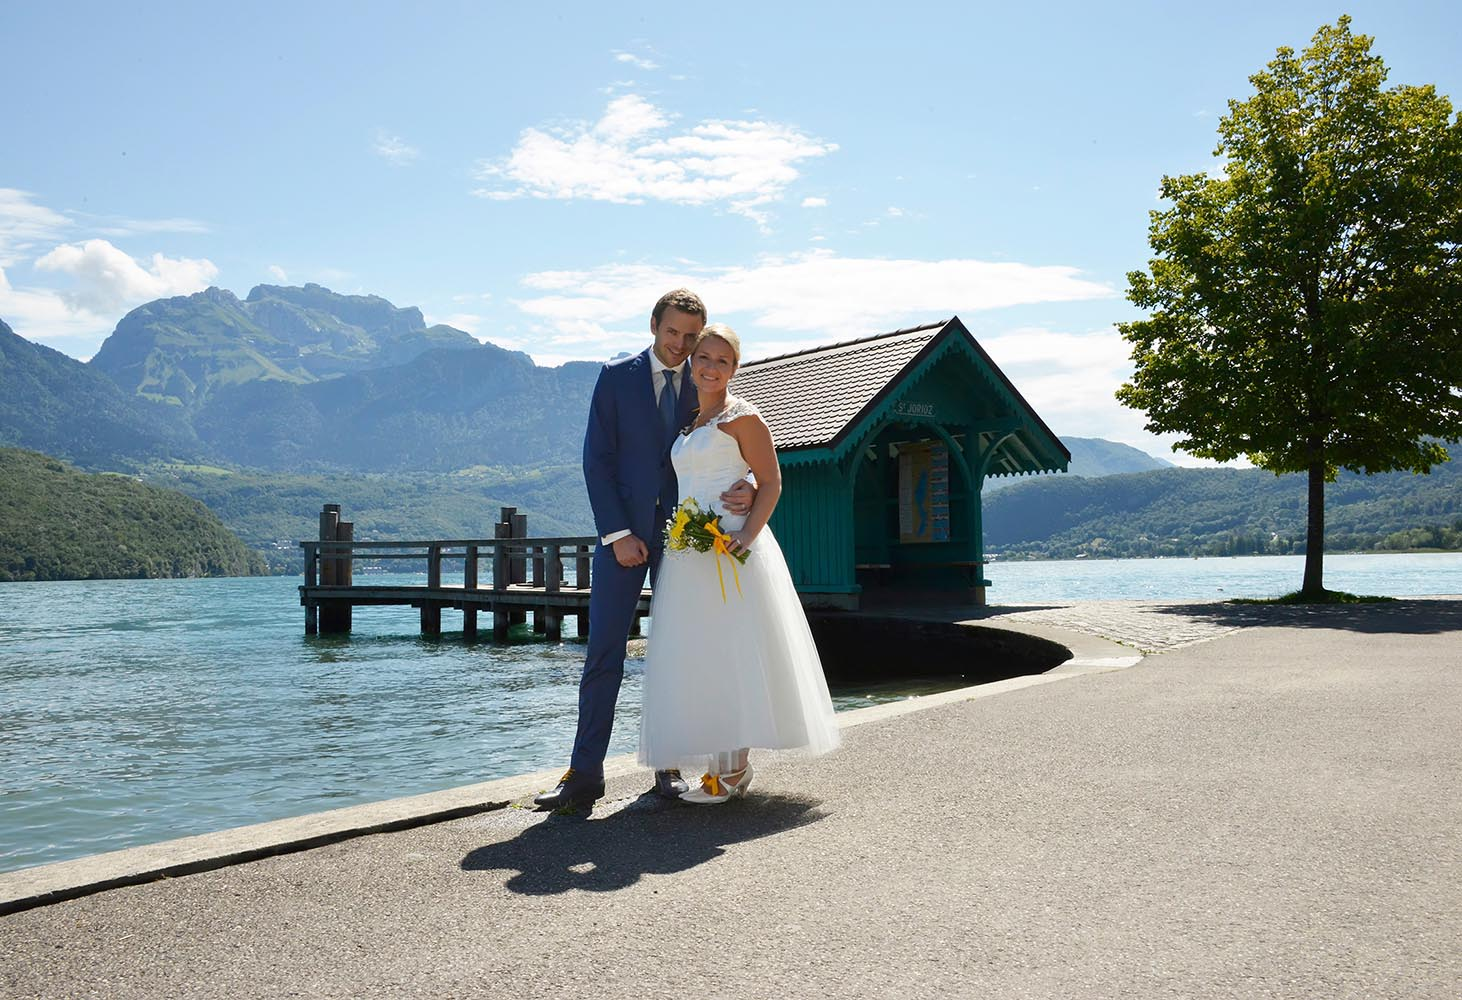 Wedding couple in Saint-Jorioz, Lake Annecy, France